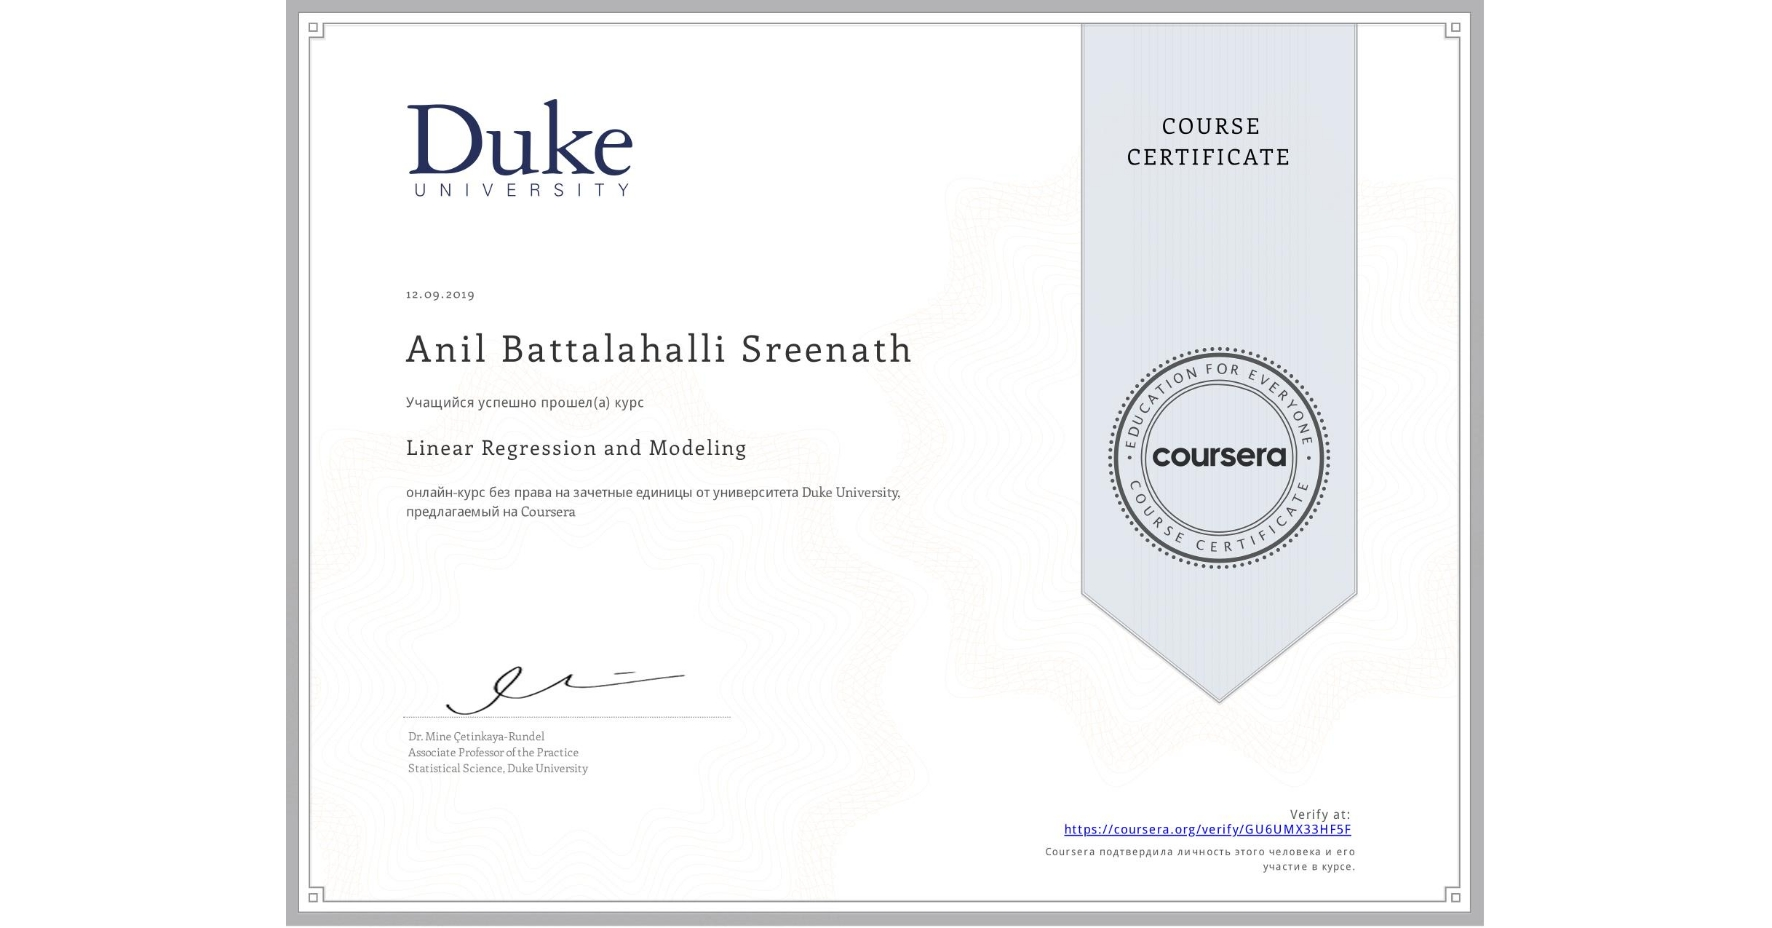 View certificate for Anil Battalahalli Sreenath, Linear Regression and Modeling , an online non-credit course authorized by Duke University and offered through Coursera